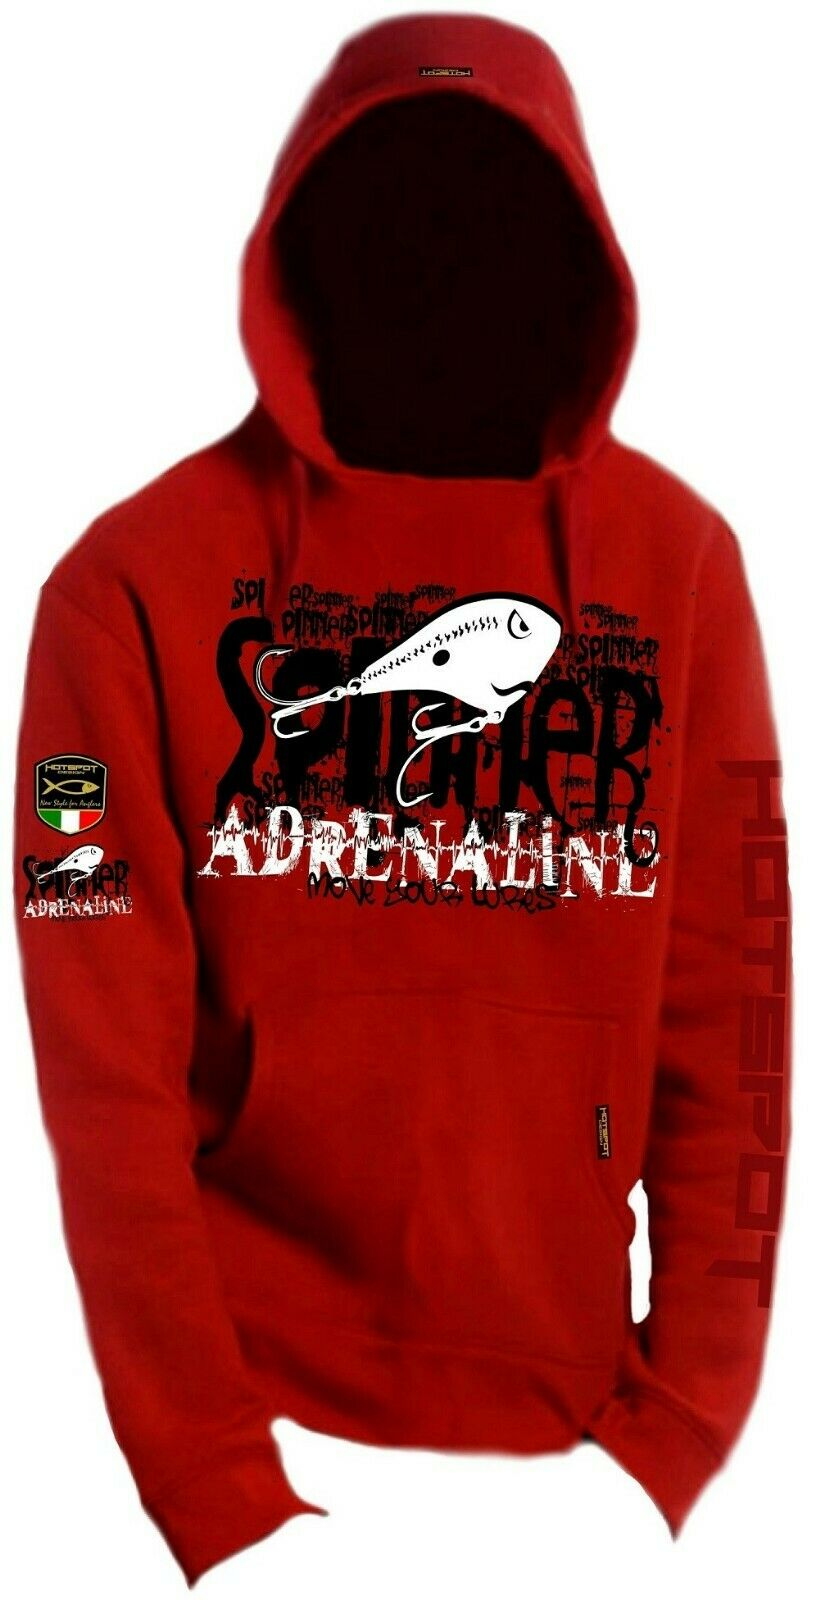 Hotspot Design Angler Kapuzen Hoody  Adrenaline , red,  F-SPIN-00  a lot of concessions